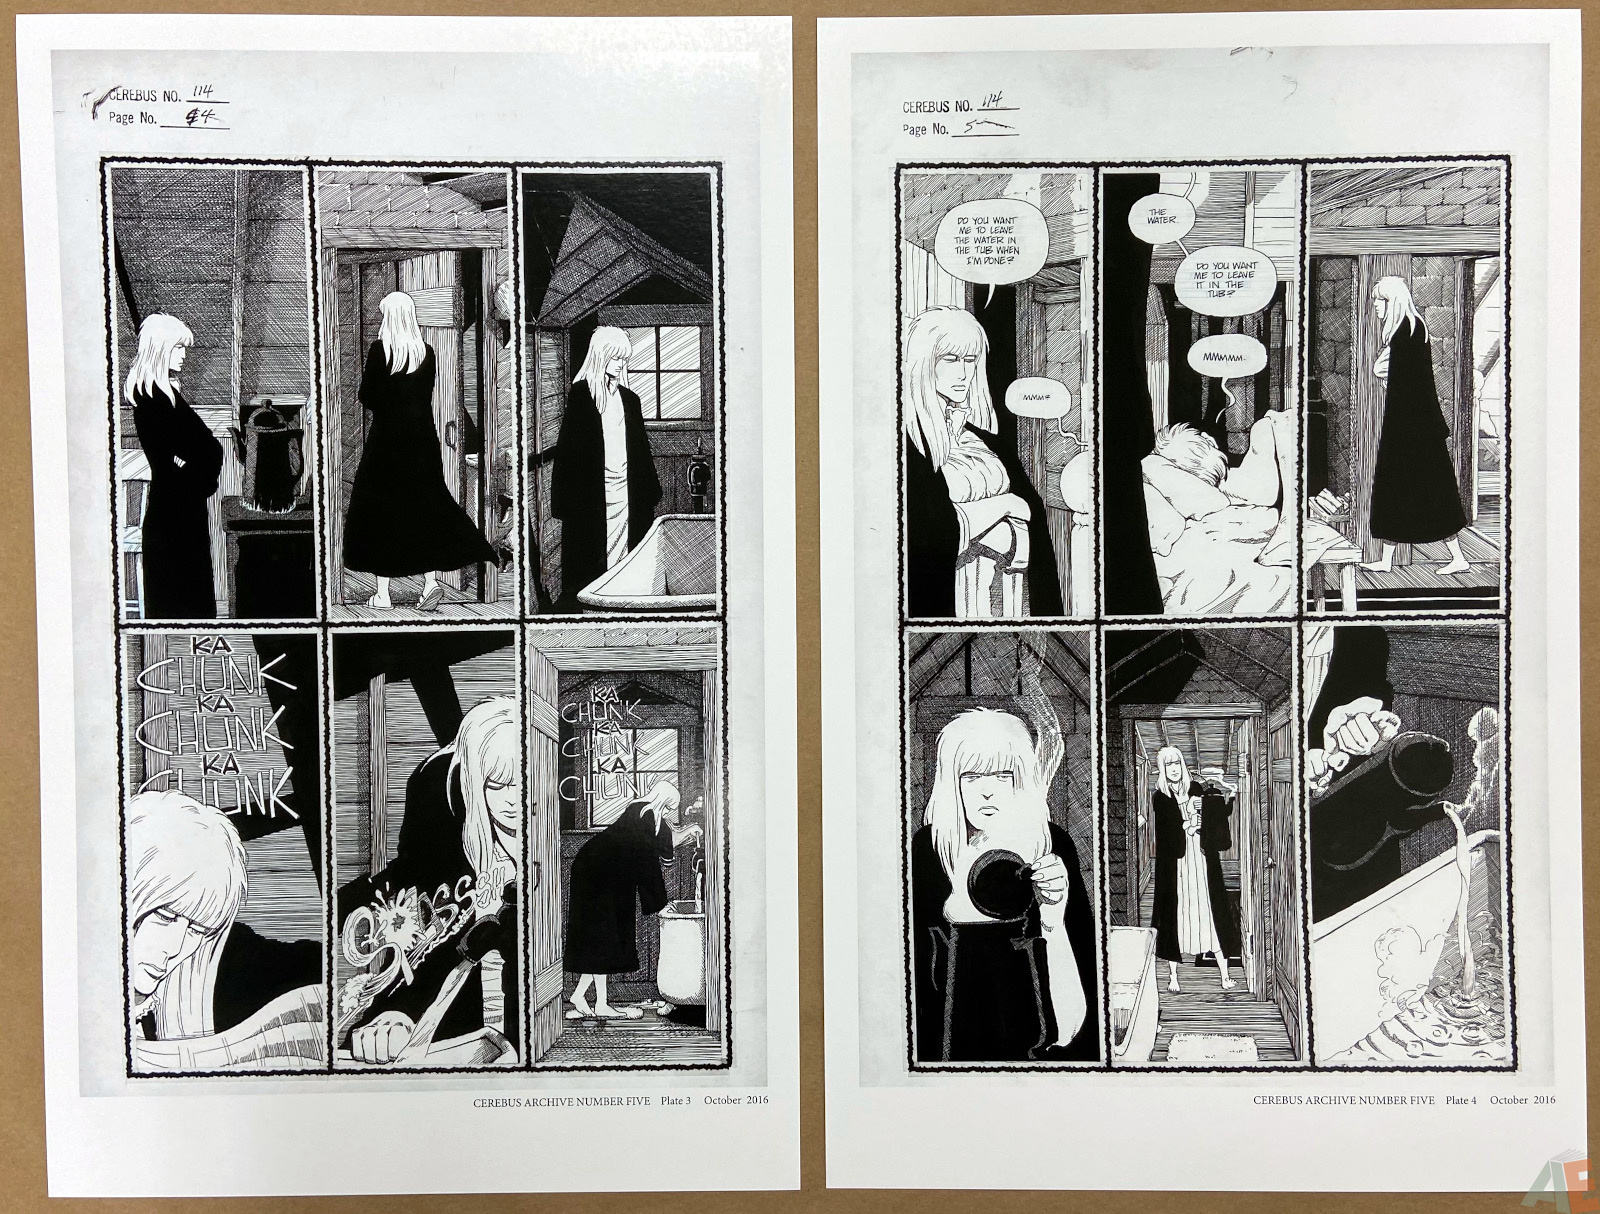 Cerebus Archive Number Five